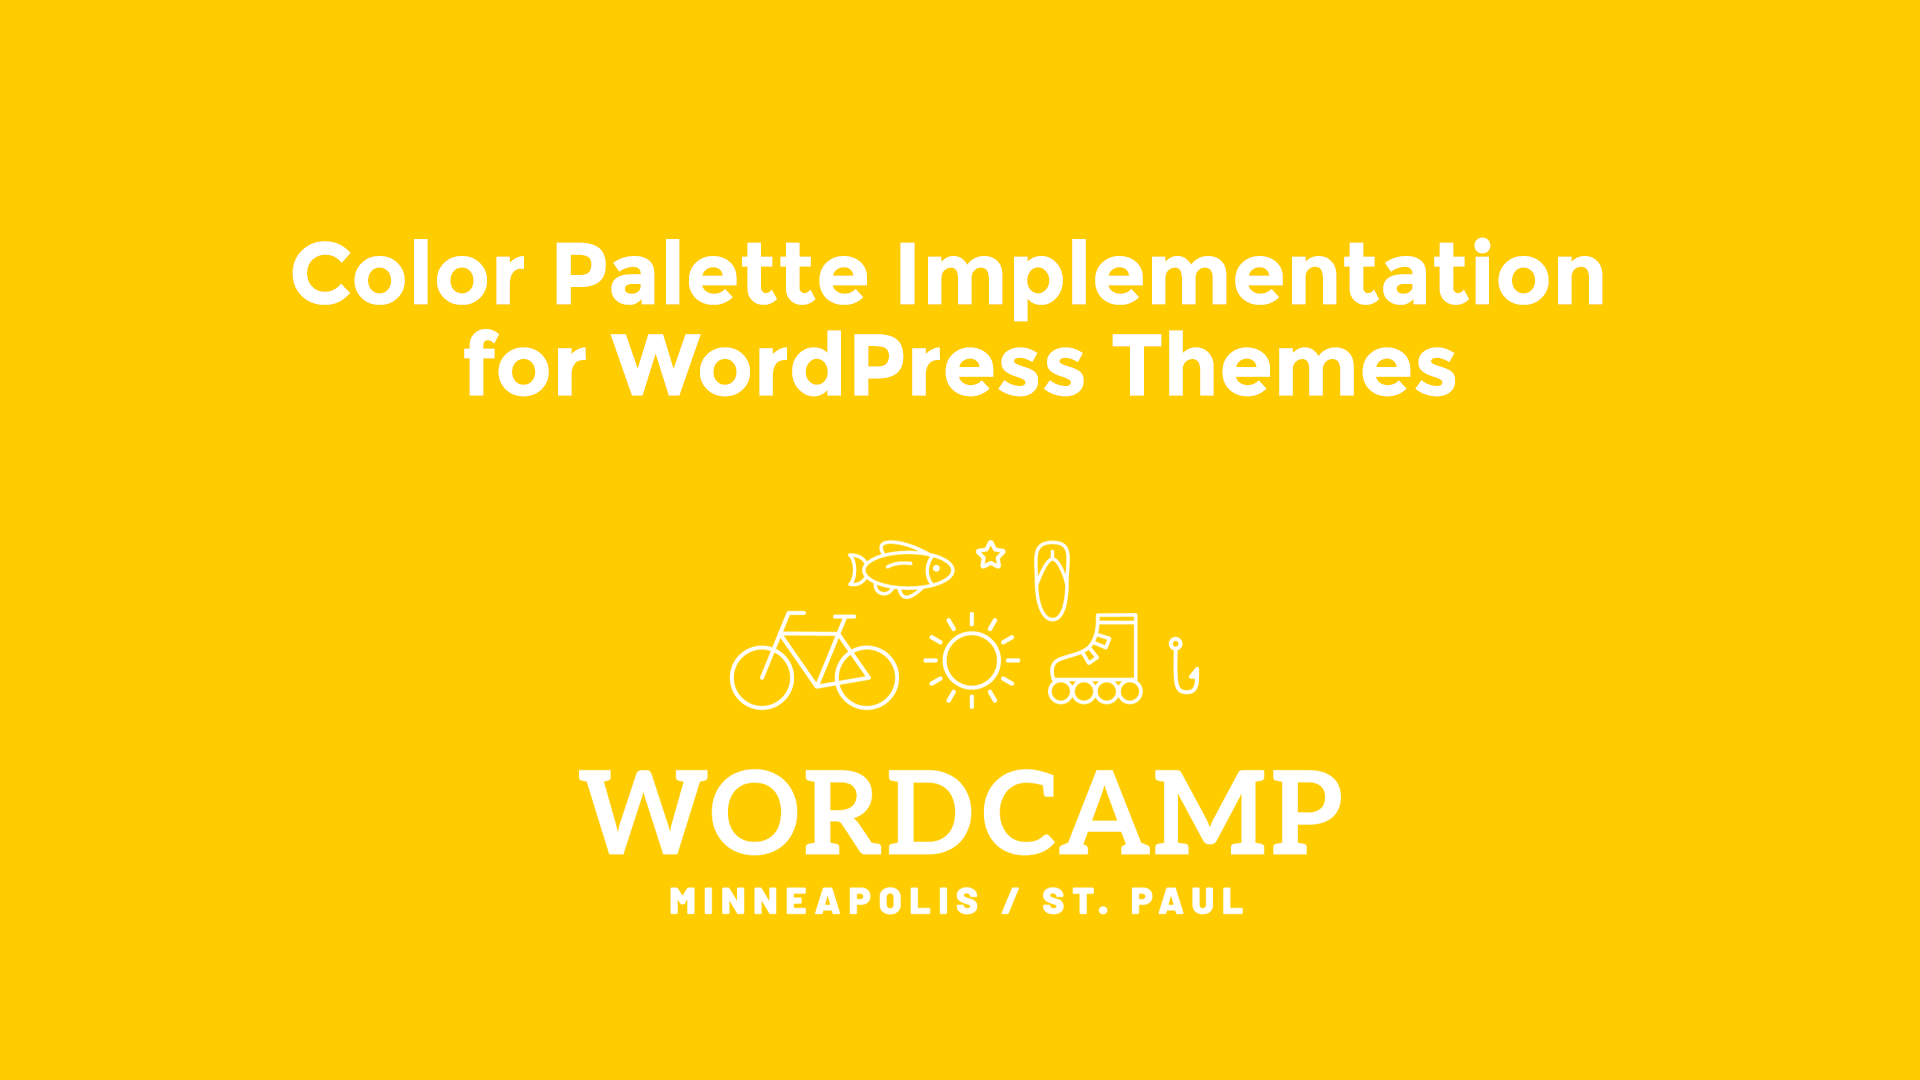 Color Palette Implementation for WordPress Themes Featured Image